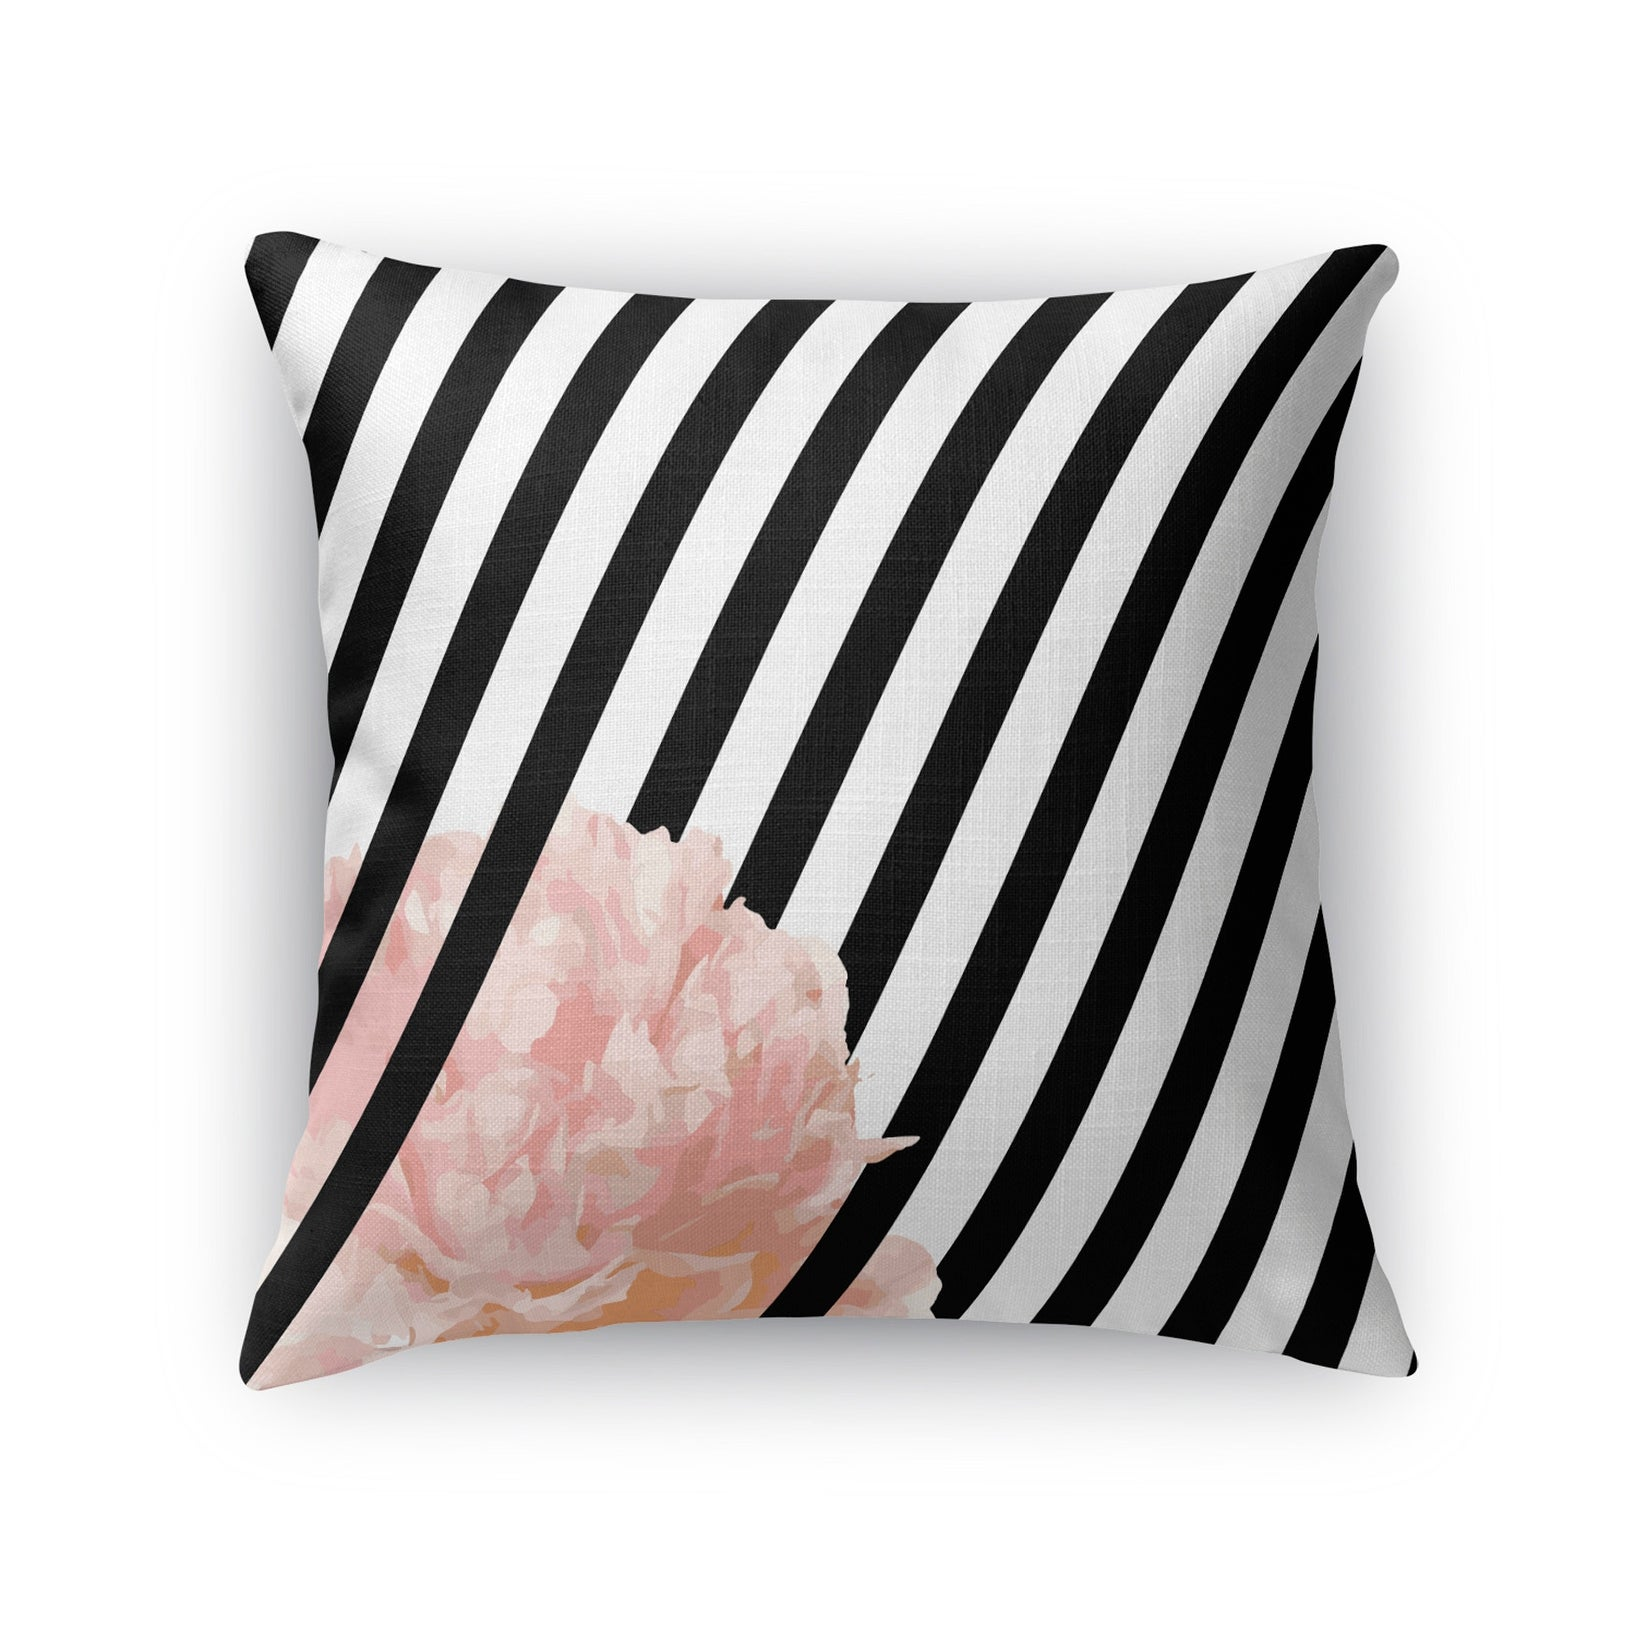 Kavka Designs Black White Pink Peony Stripe Accent Pillow With Insert Overstock 16937032